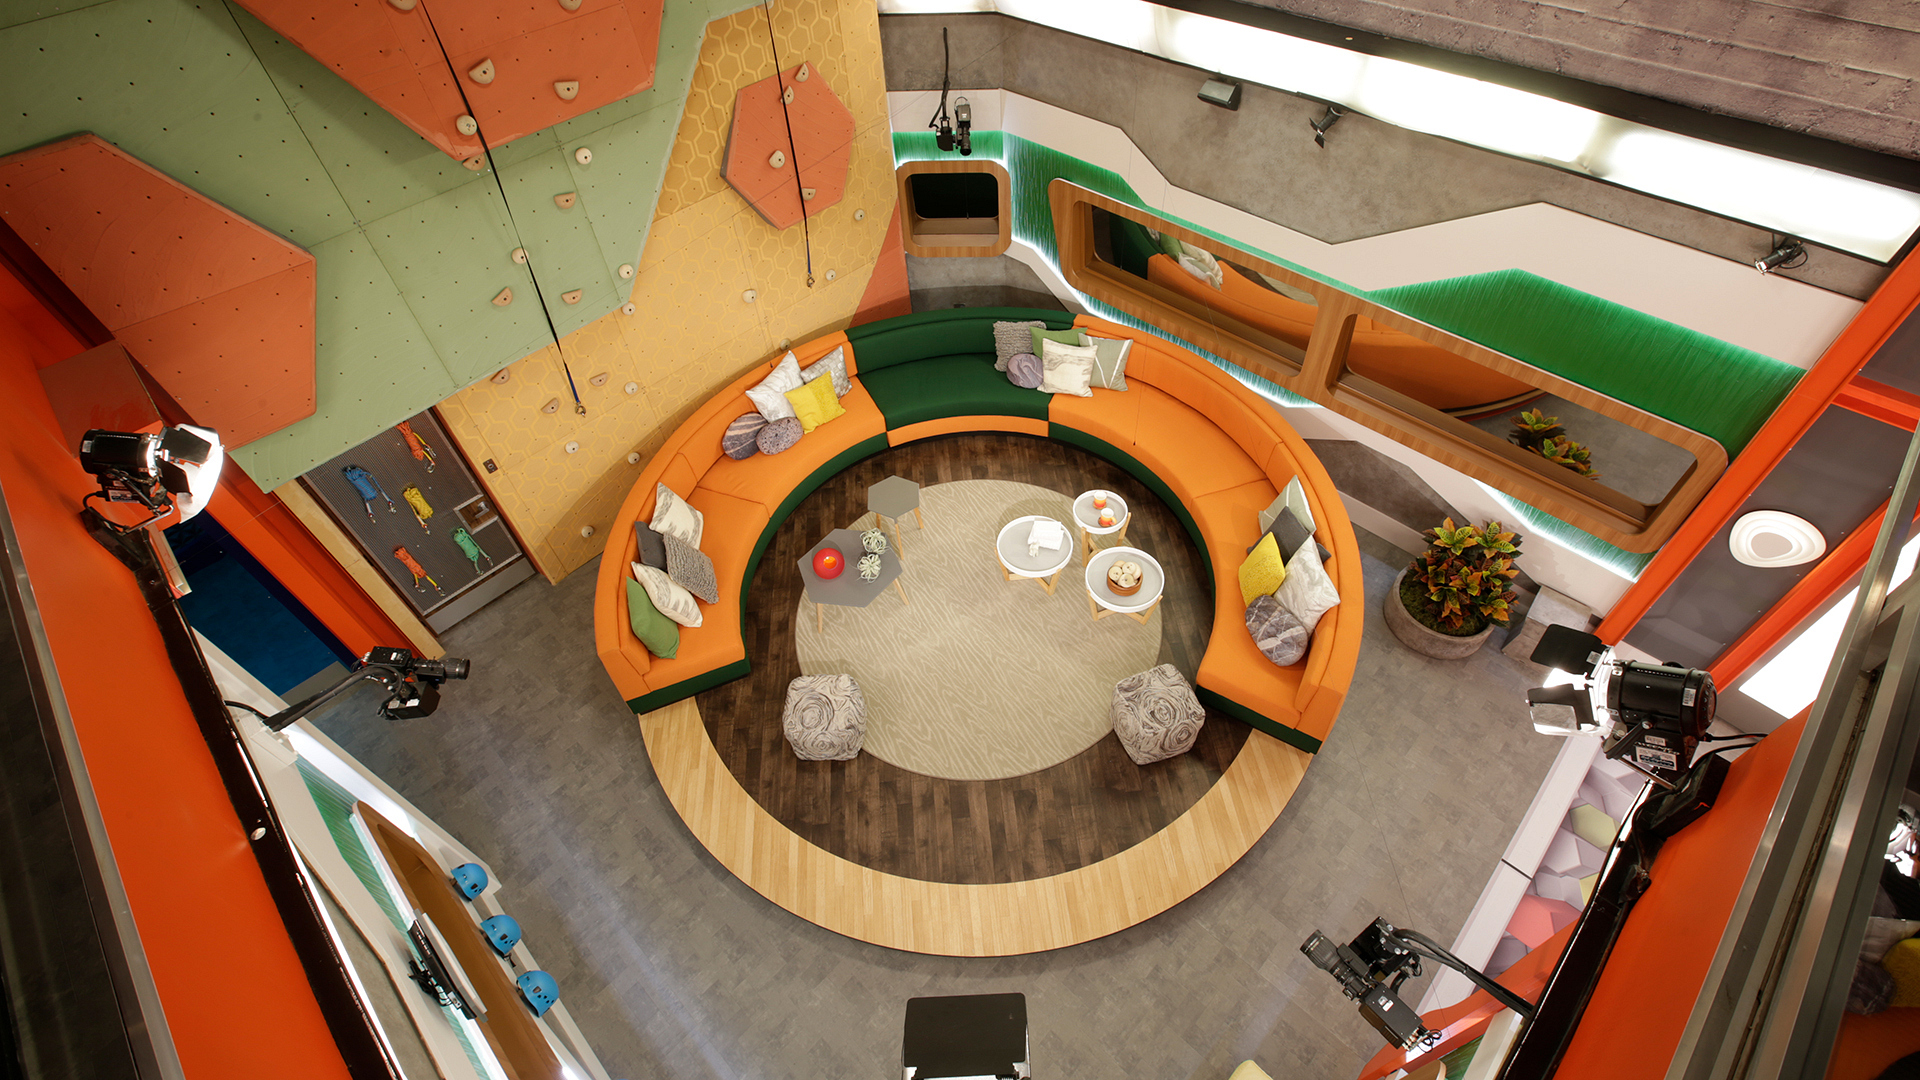 In another first, this season's circular couch is on a large rotating platform, opening up a space for the Houseguests to access the climbing wall.